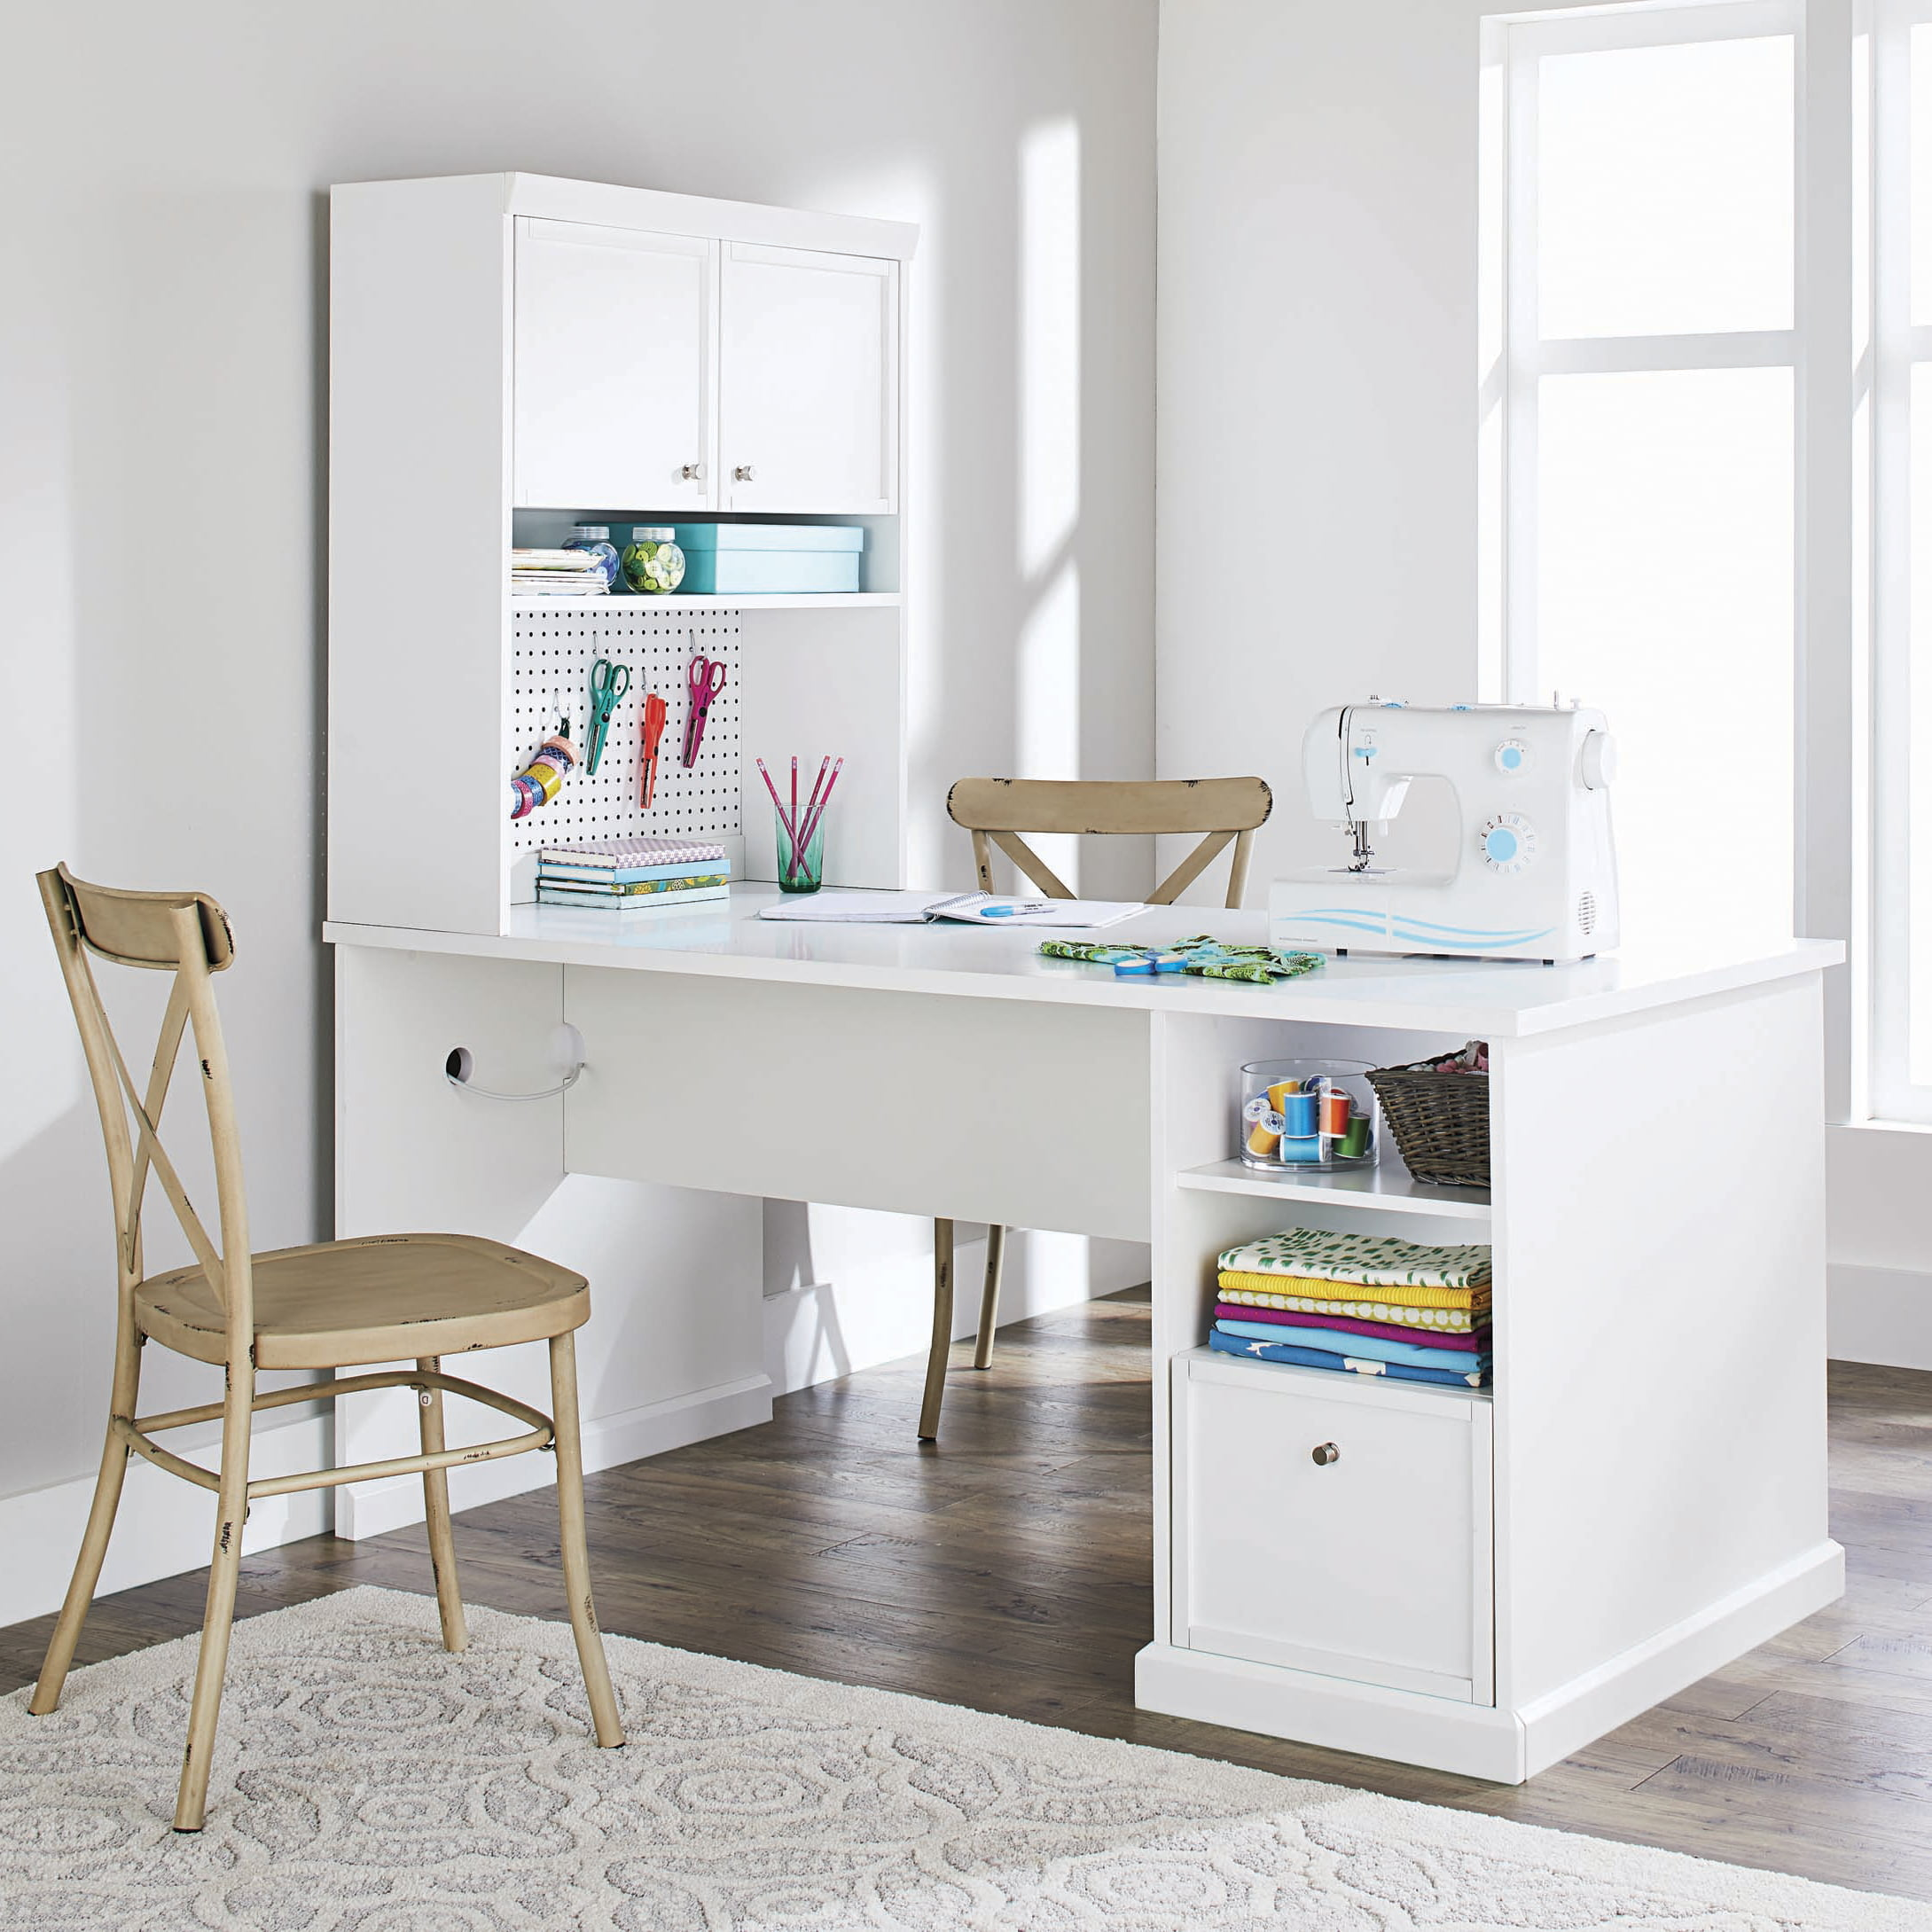 Better Homes Gardens Craftform Sewing And Craft Table With Storage Hutch And Pegboard Walmart Com Walmart Com